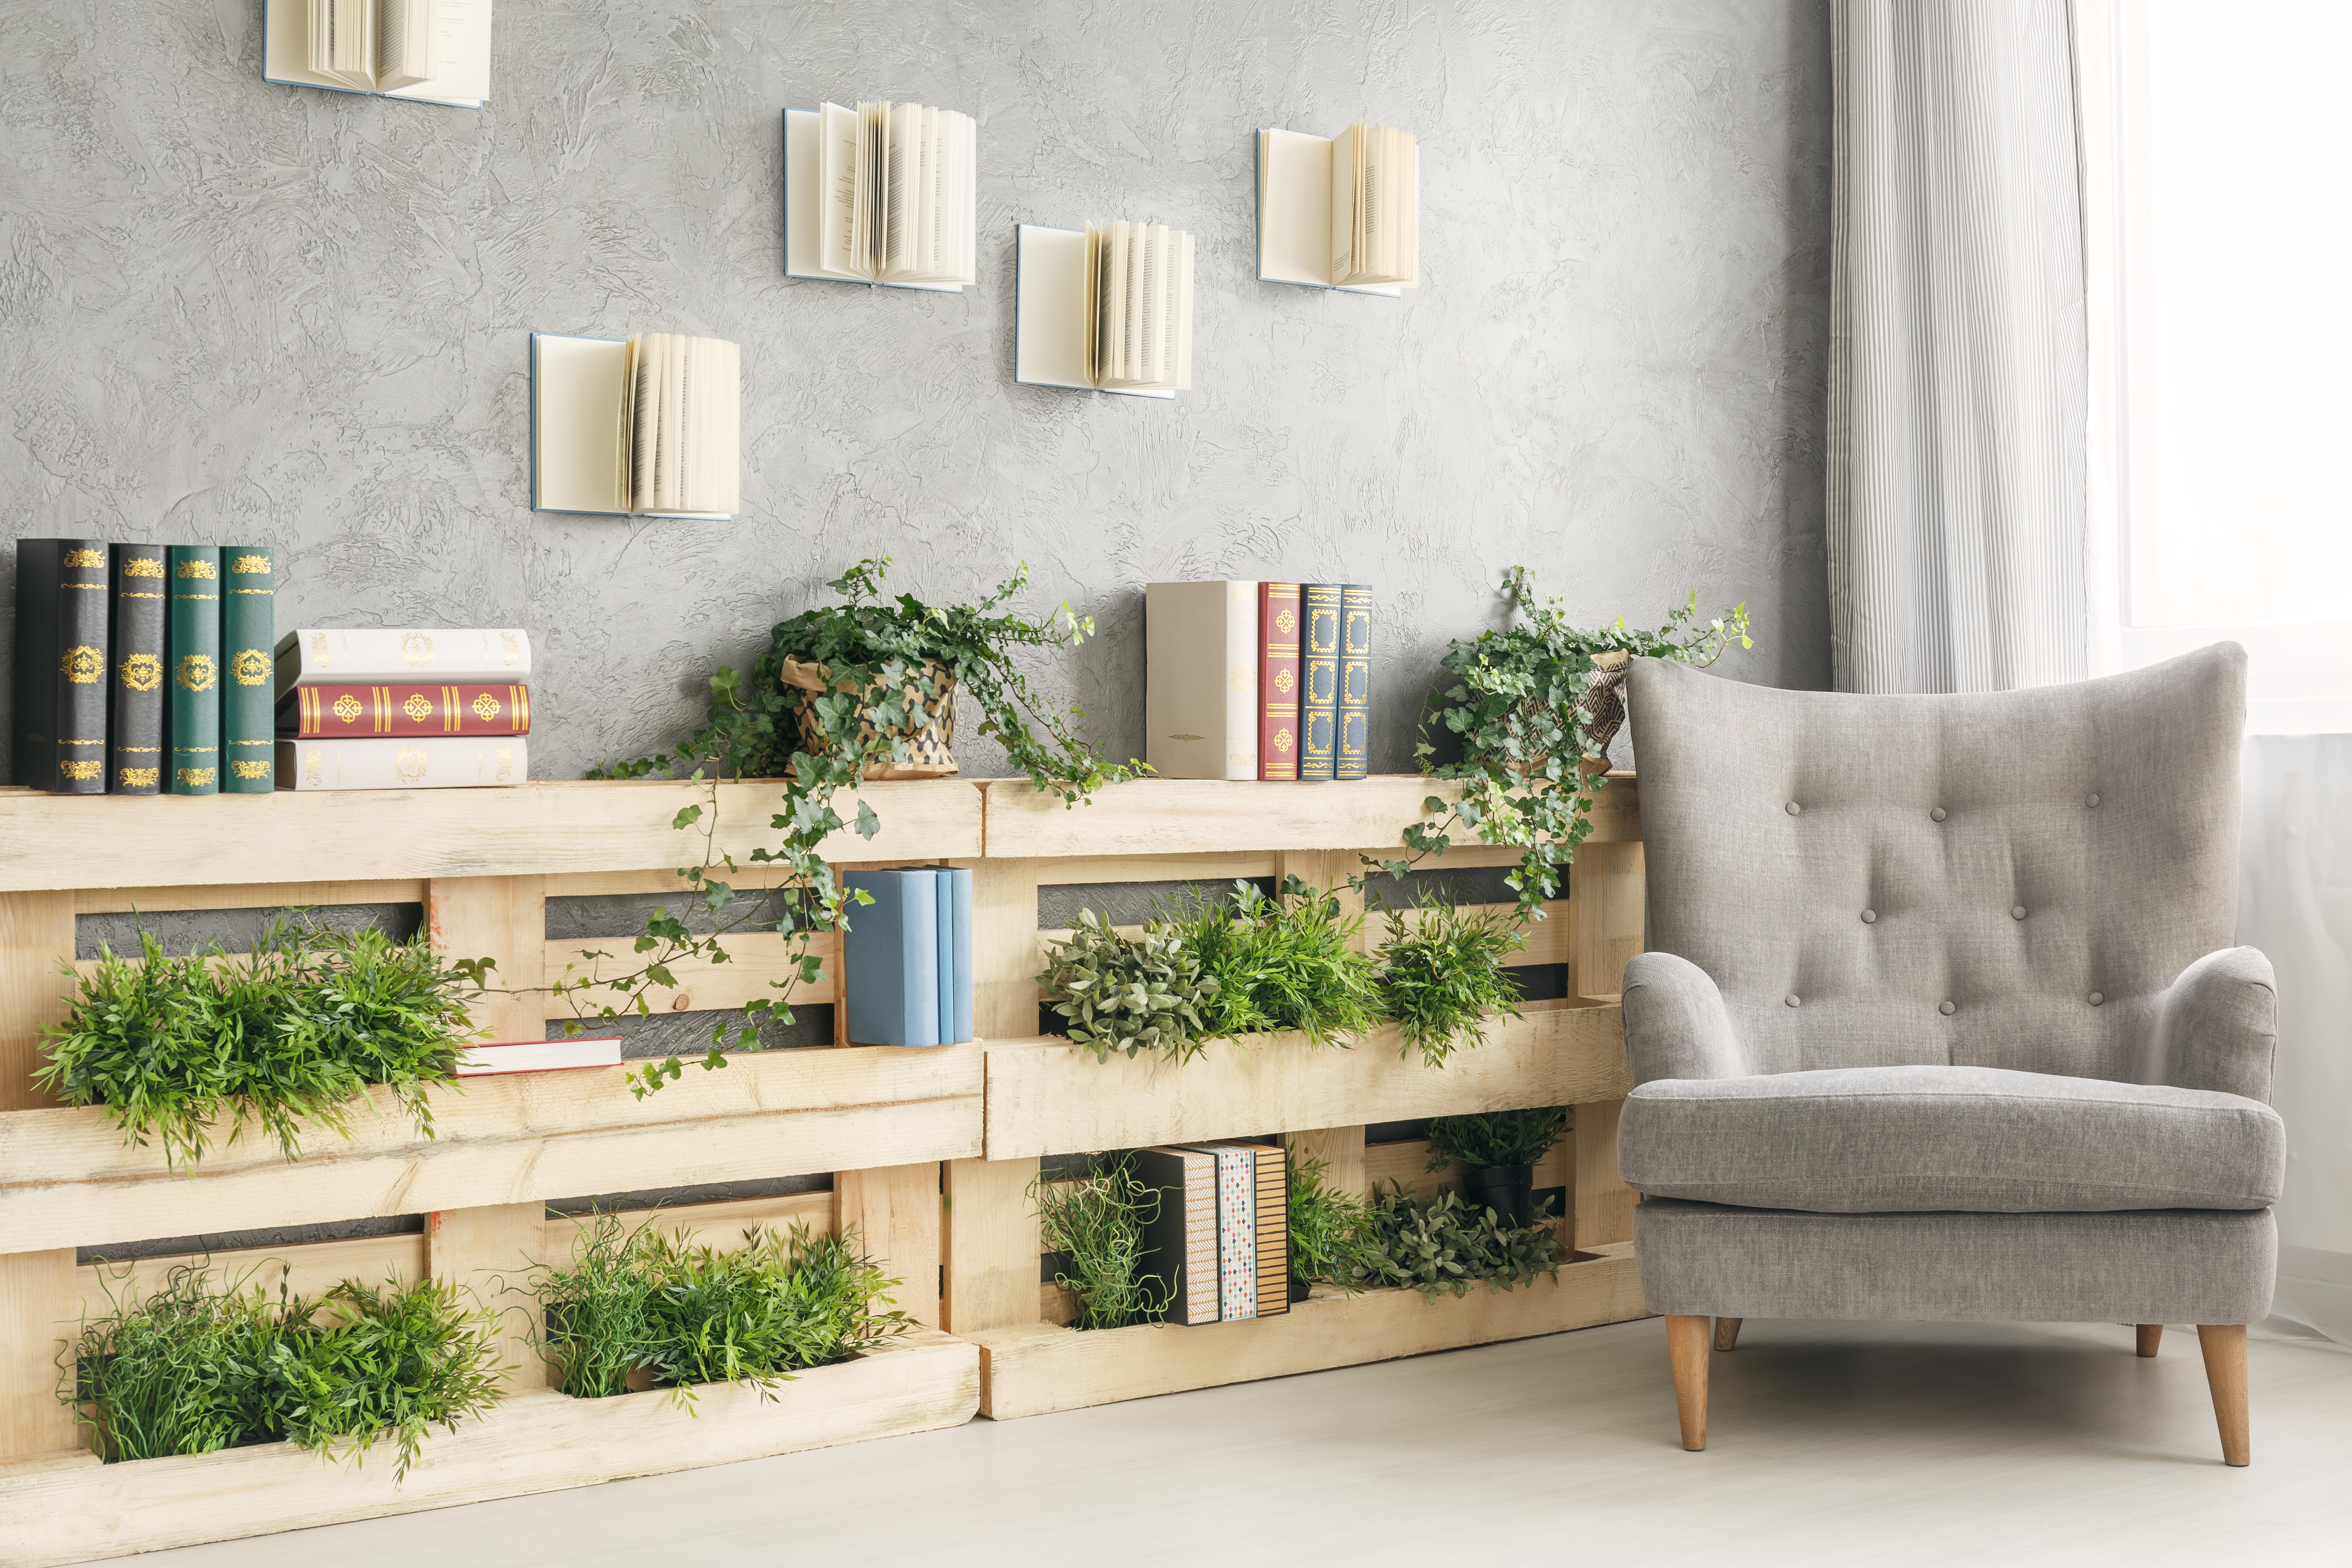 6 Great Pallet Furniture Ideas For Your Home Homesales Com Au